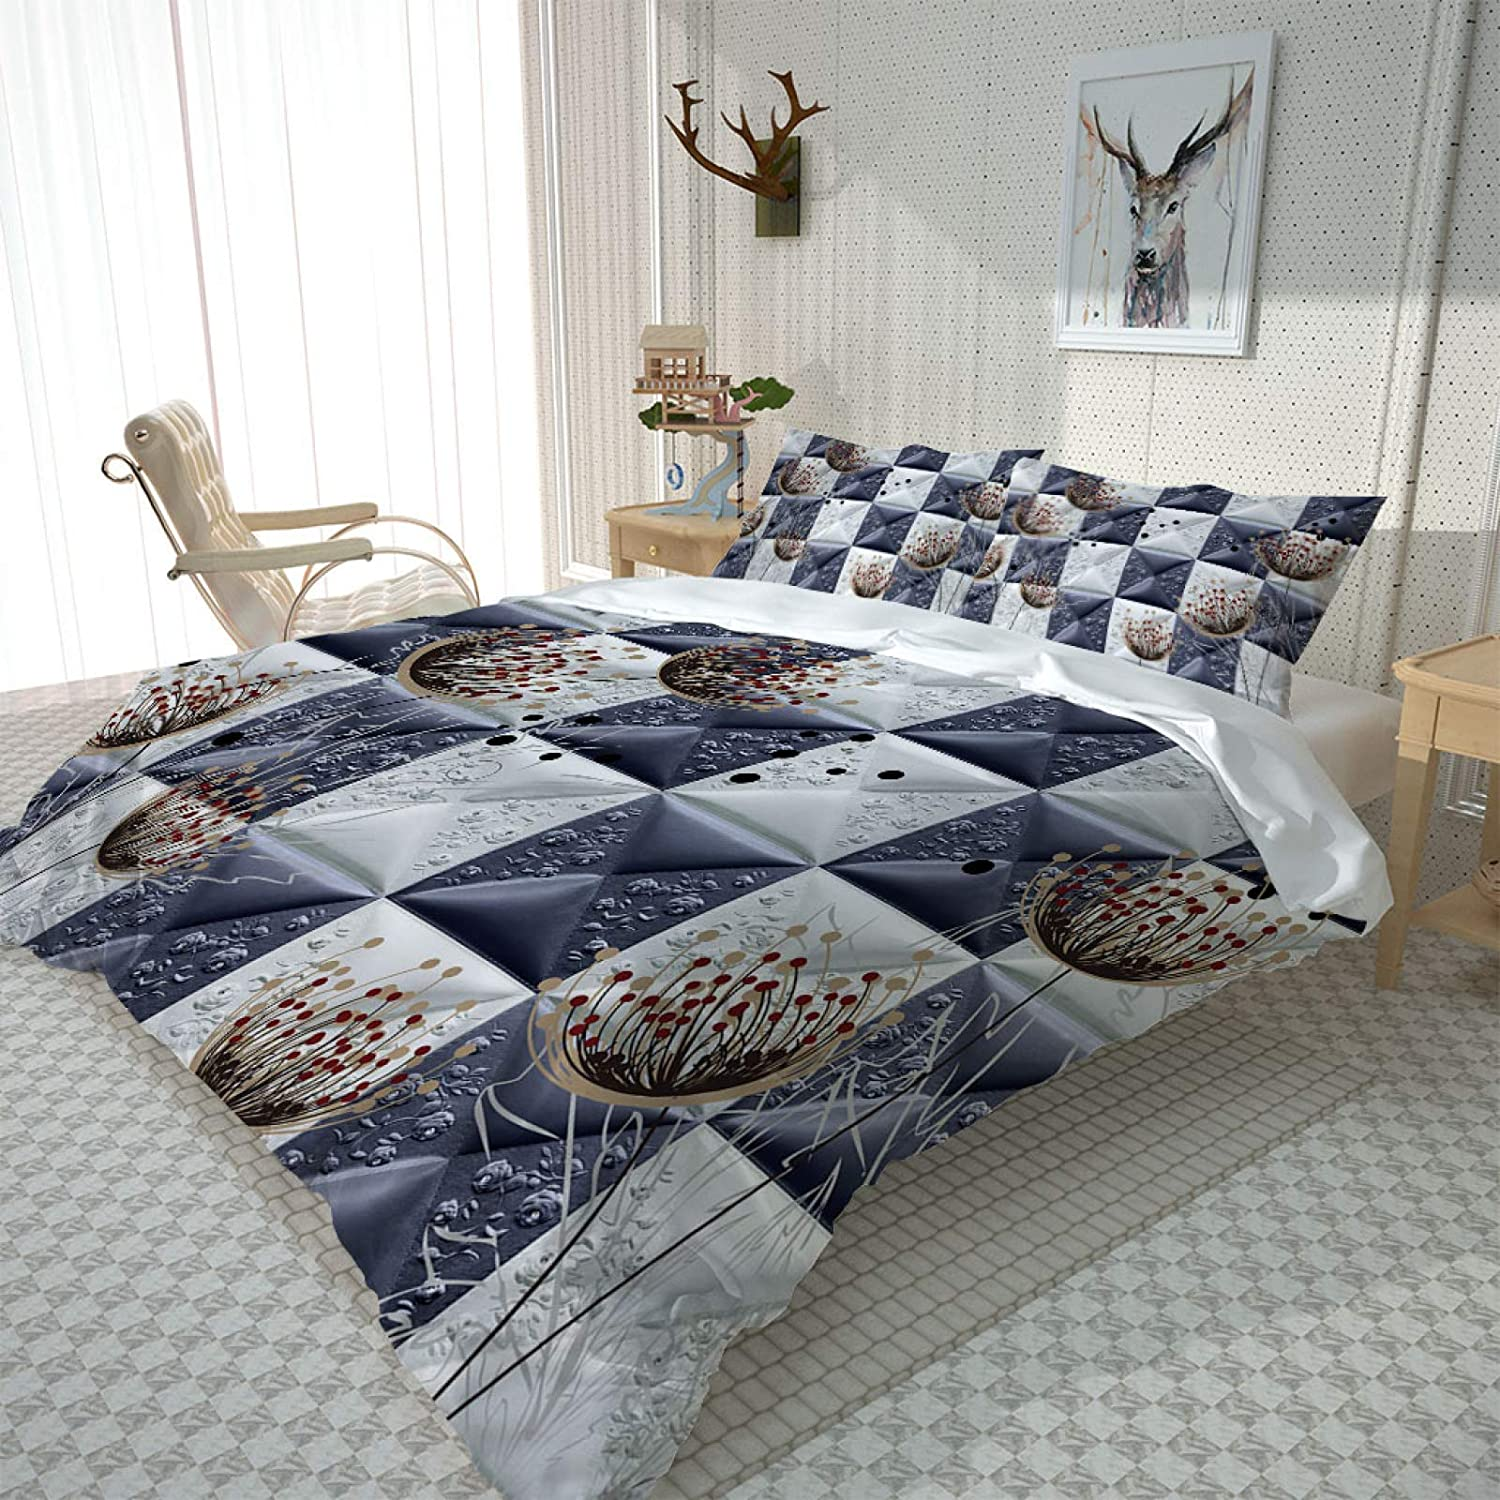 Limited price HKDGHTHJ 3D Bedding Outlet SALE is Super Comfortable Plant and Soft Dandelio